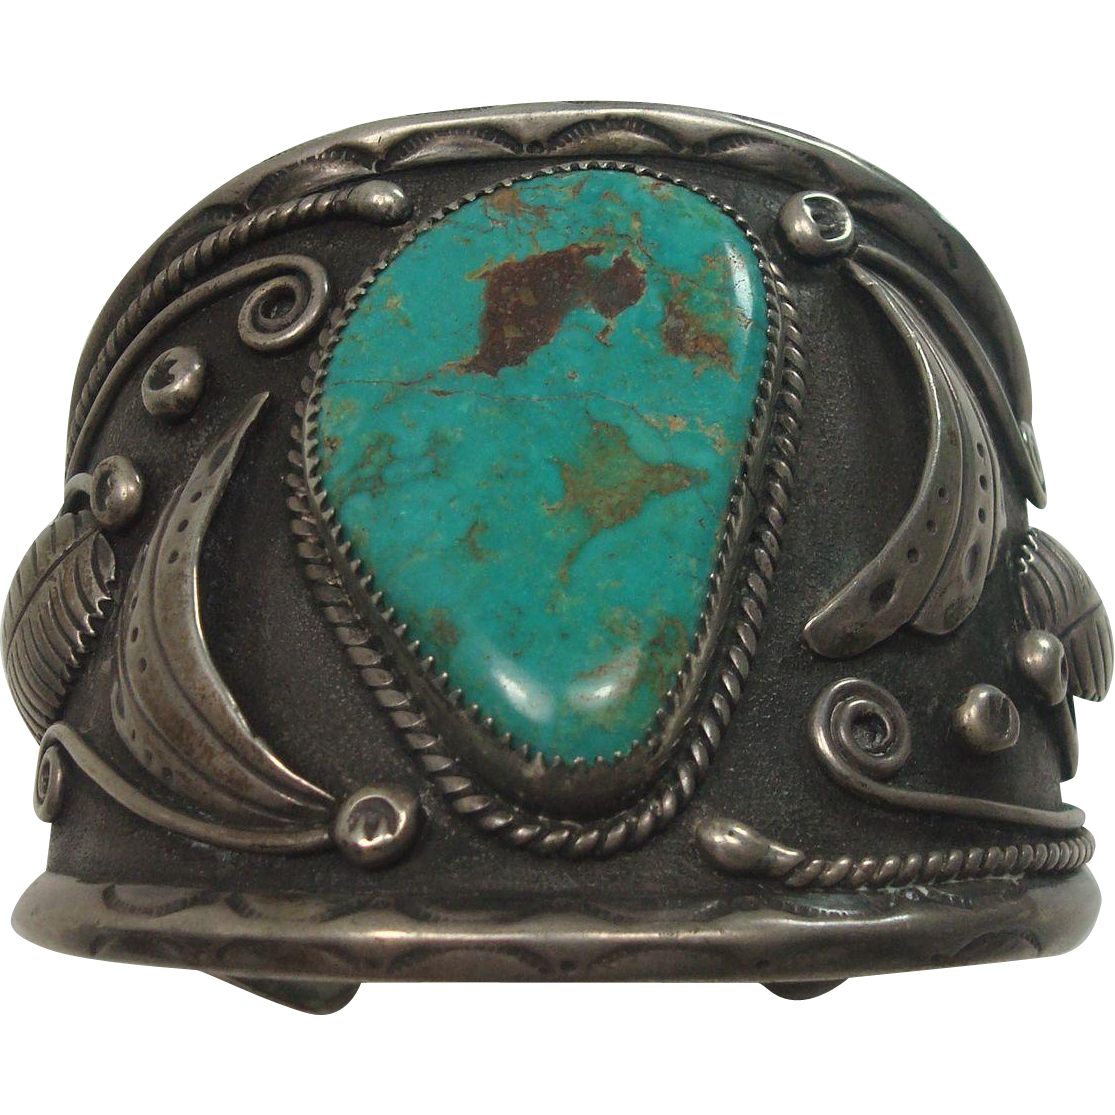 Signed Lorenzo Livingston Turquoise and Sterling Cuff Bracelet 109.5 grams